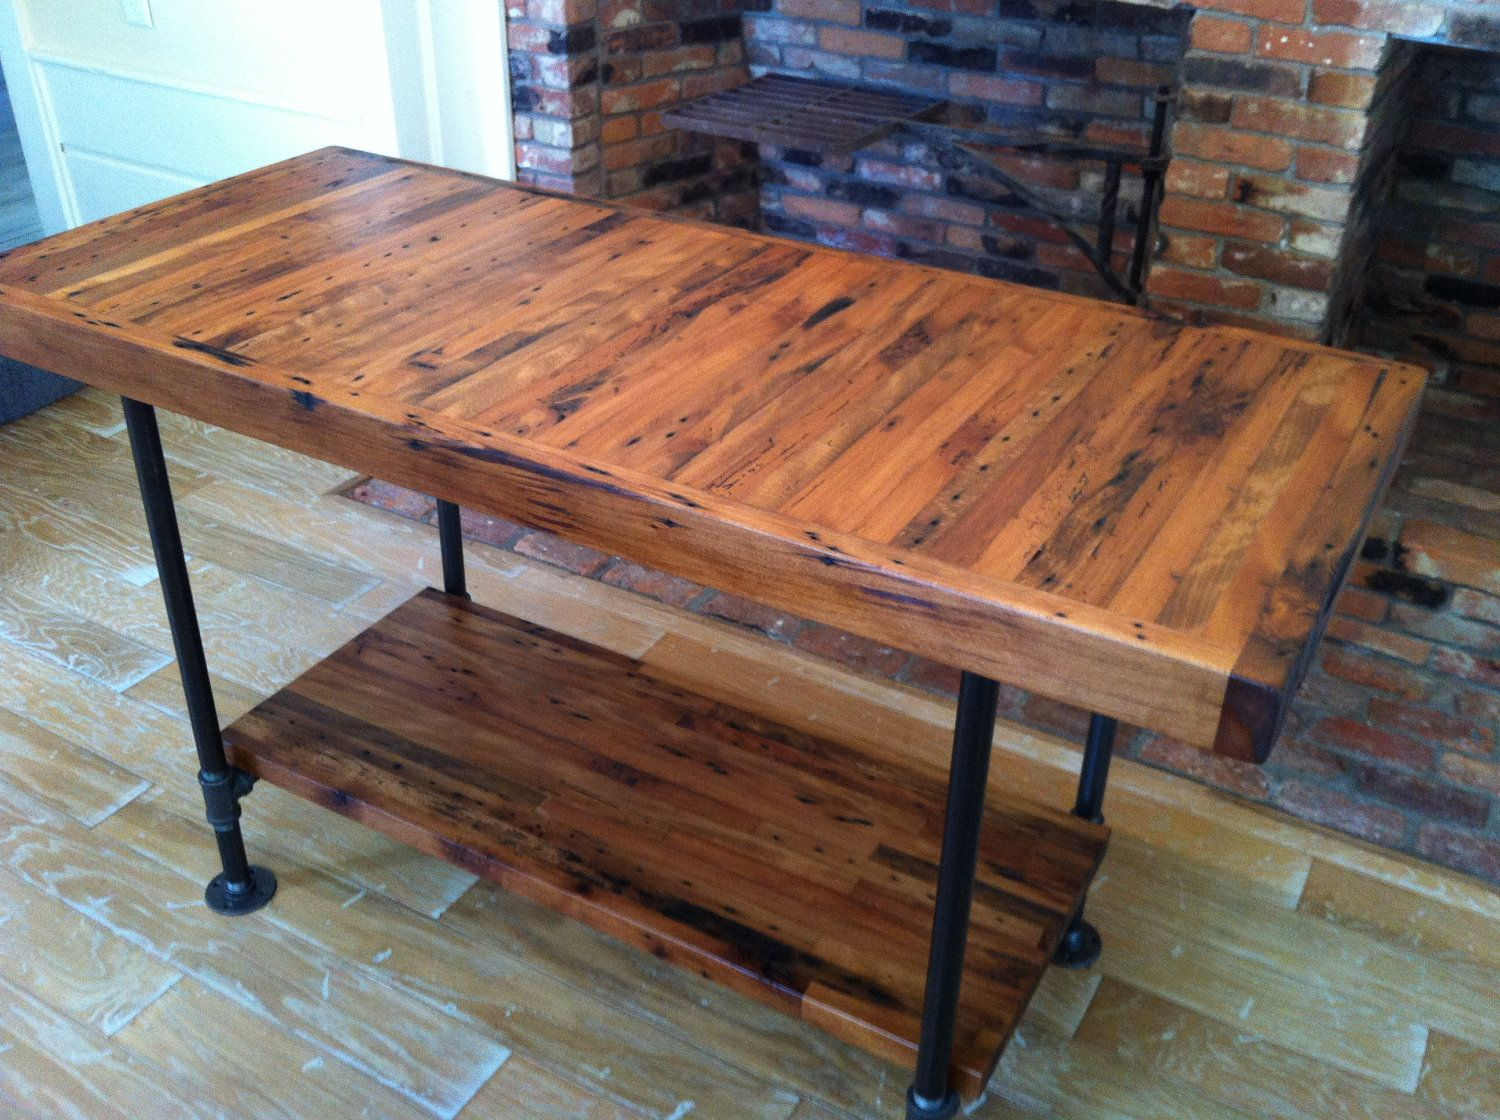 Kitchen Island Butcher Block Style Reclaimed Wood And The Legs Frame Are